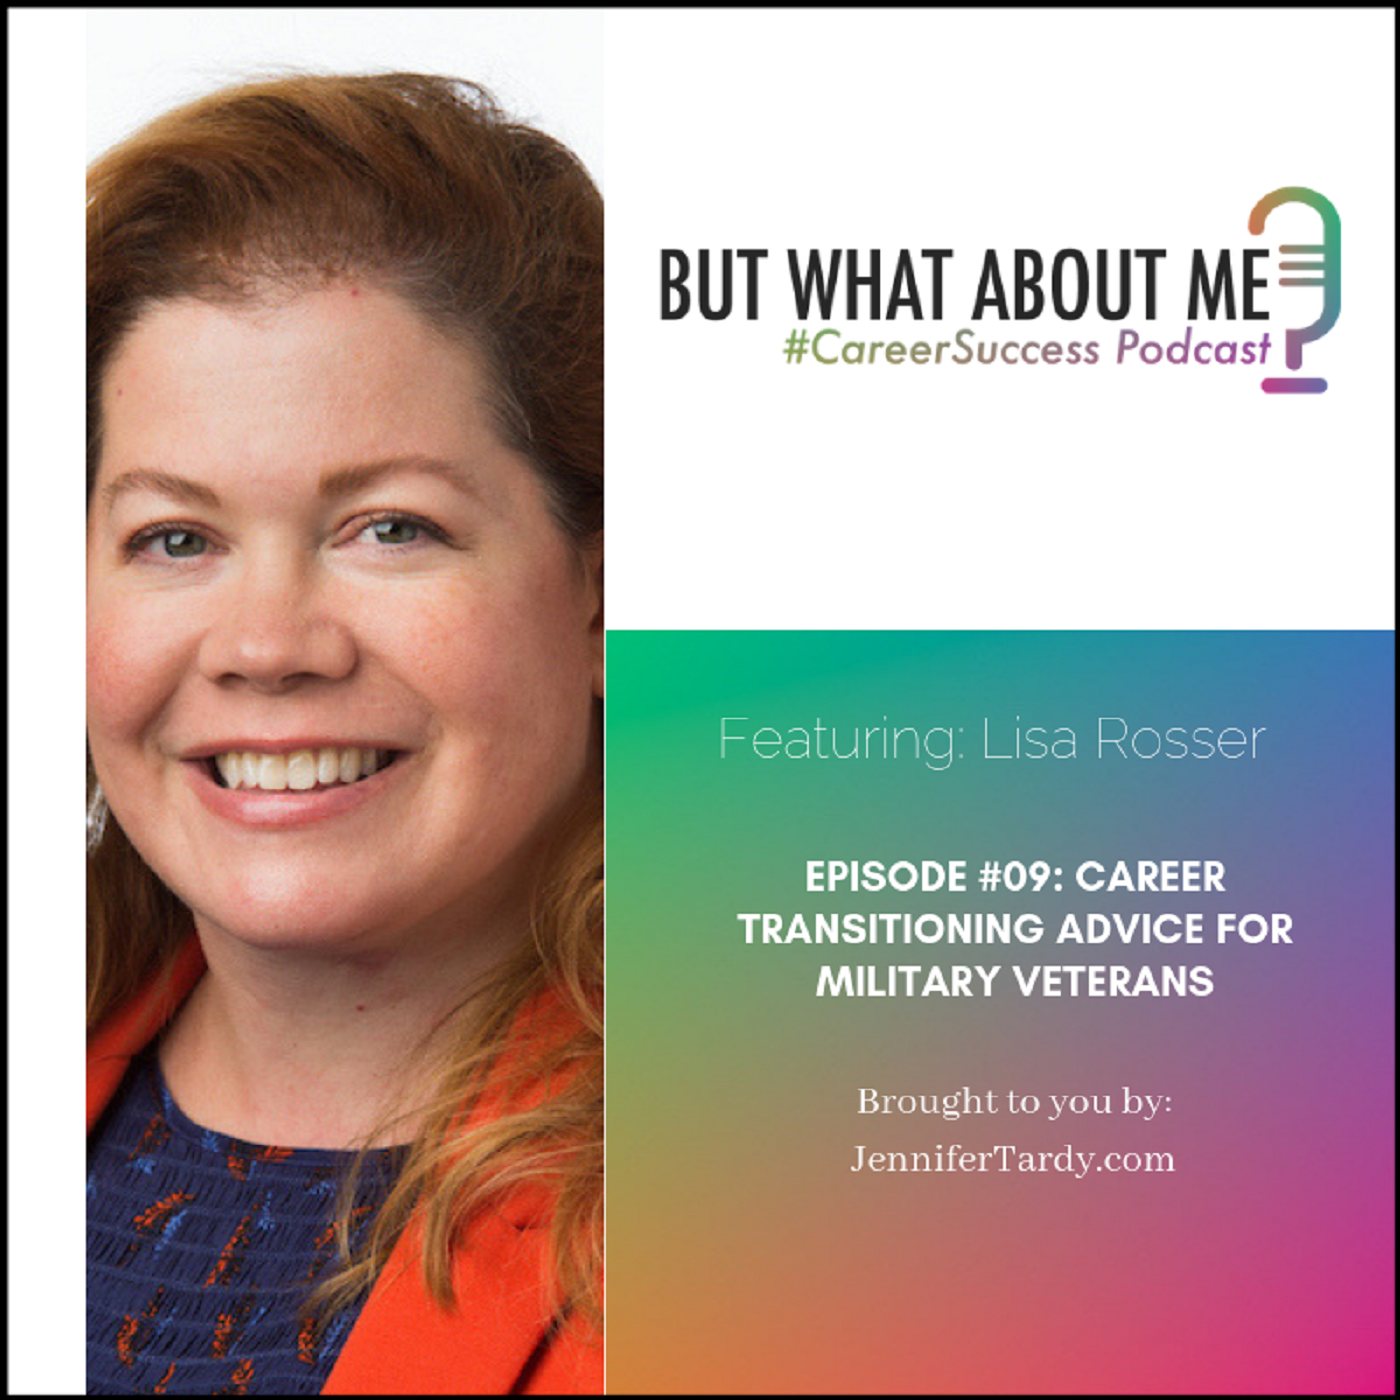 Episode 09: Career Transitioning Advice For Military Veterans